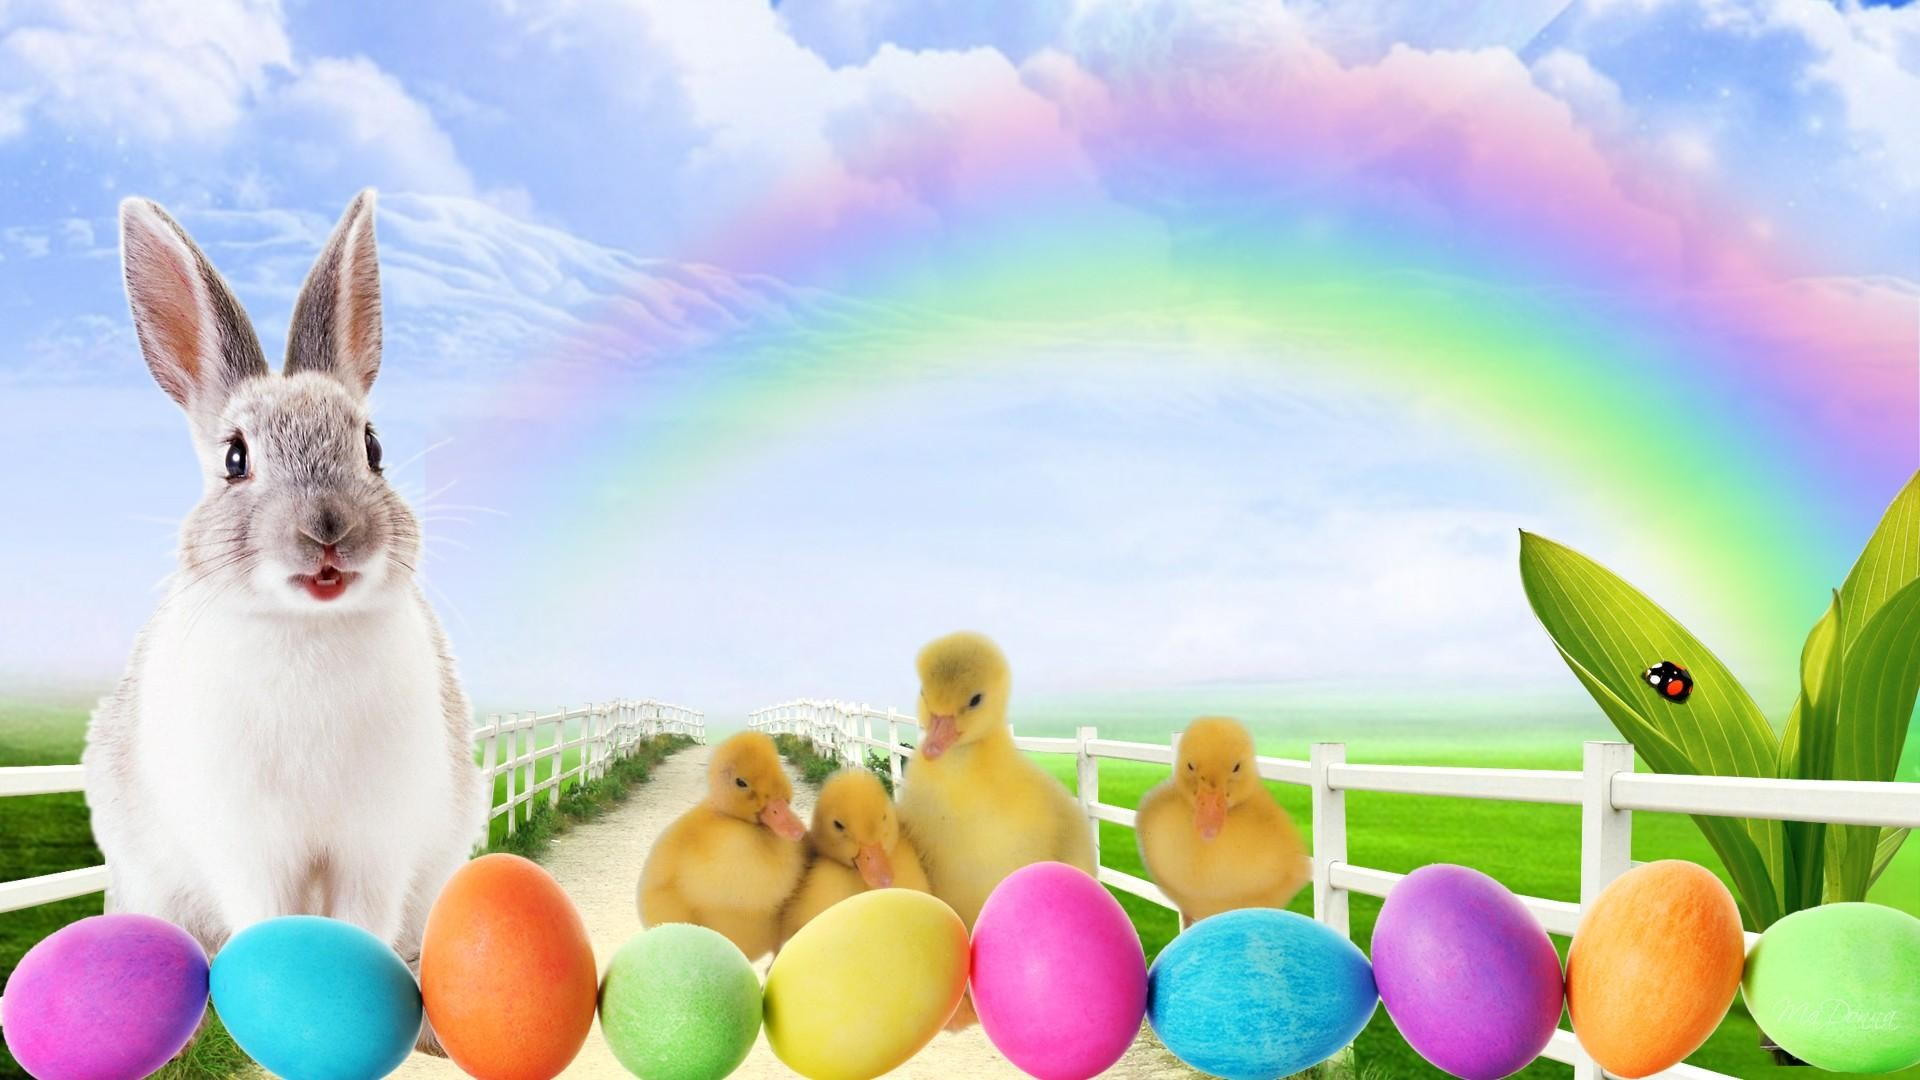 1920x1080 easter bunny hd background wallpaper 12149 baltana